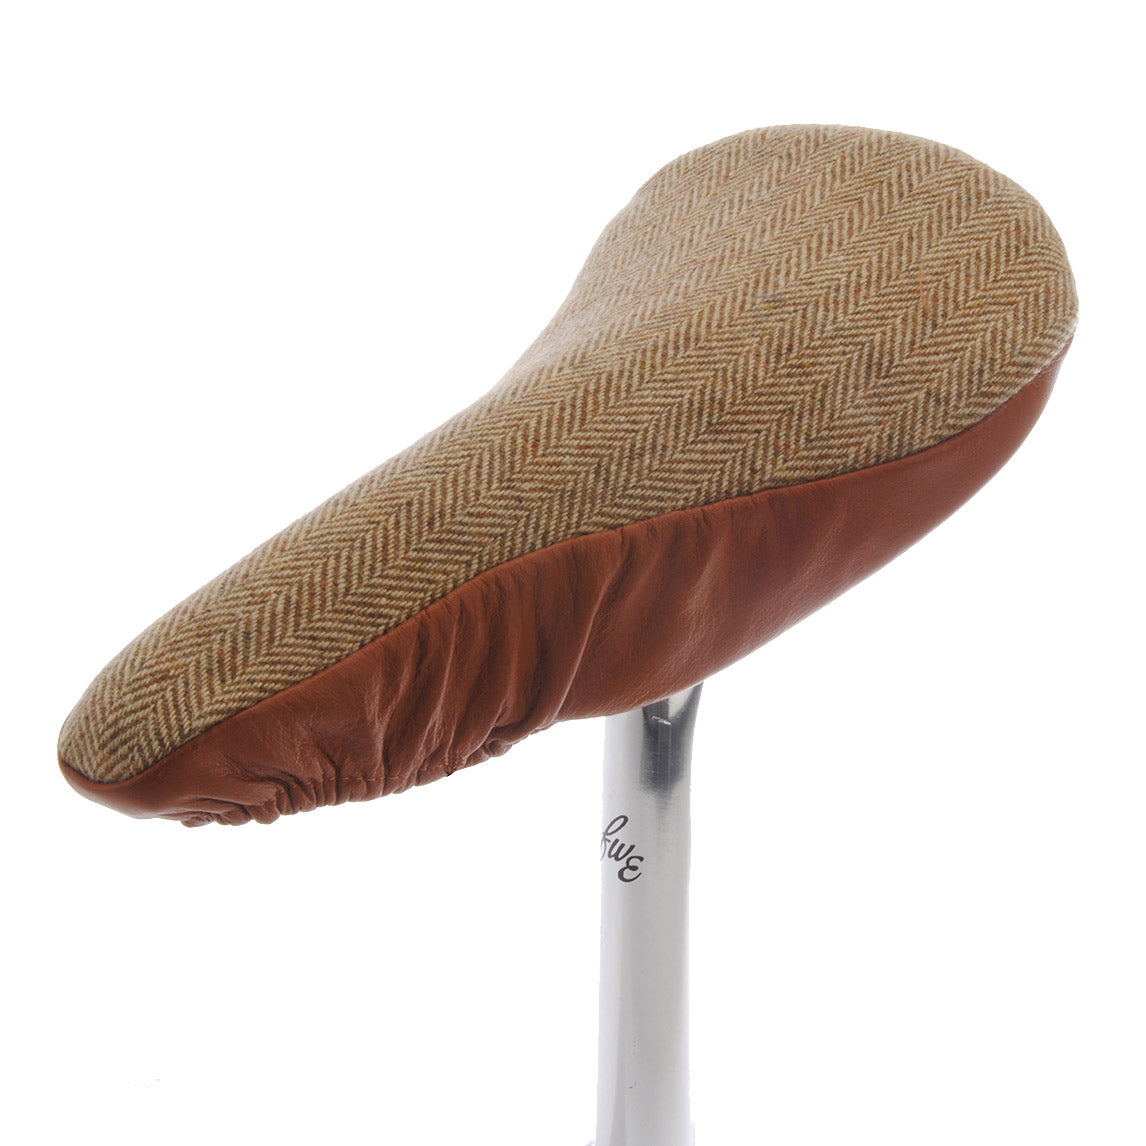 Archi Tweed Saddle Cover - Beige